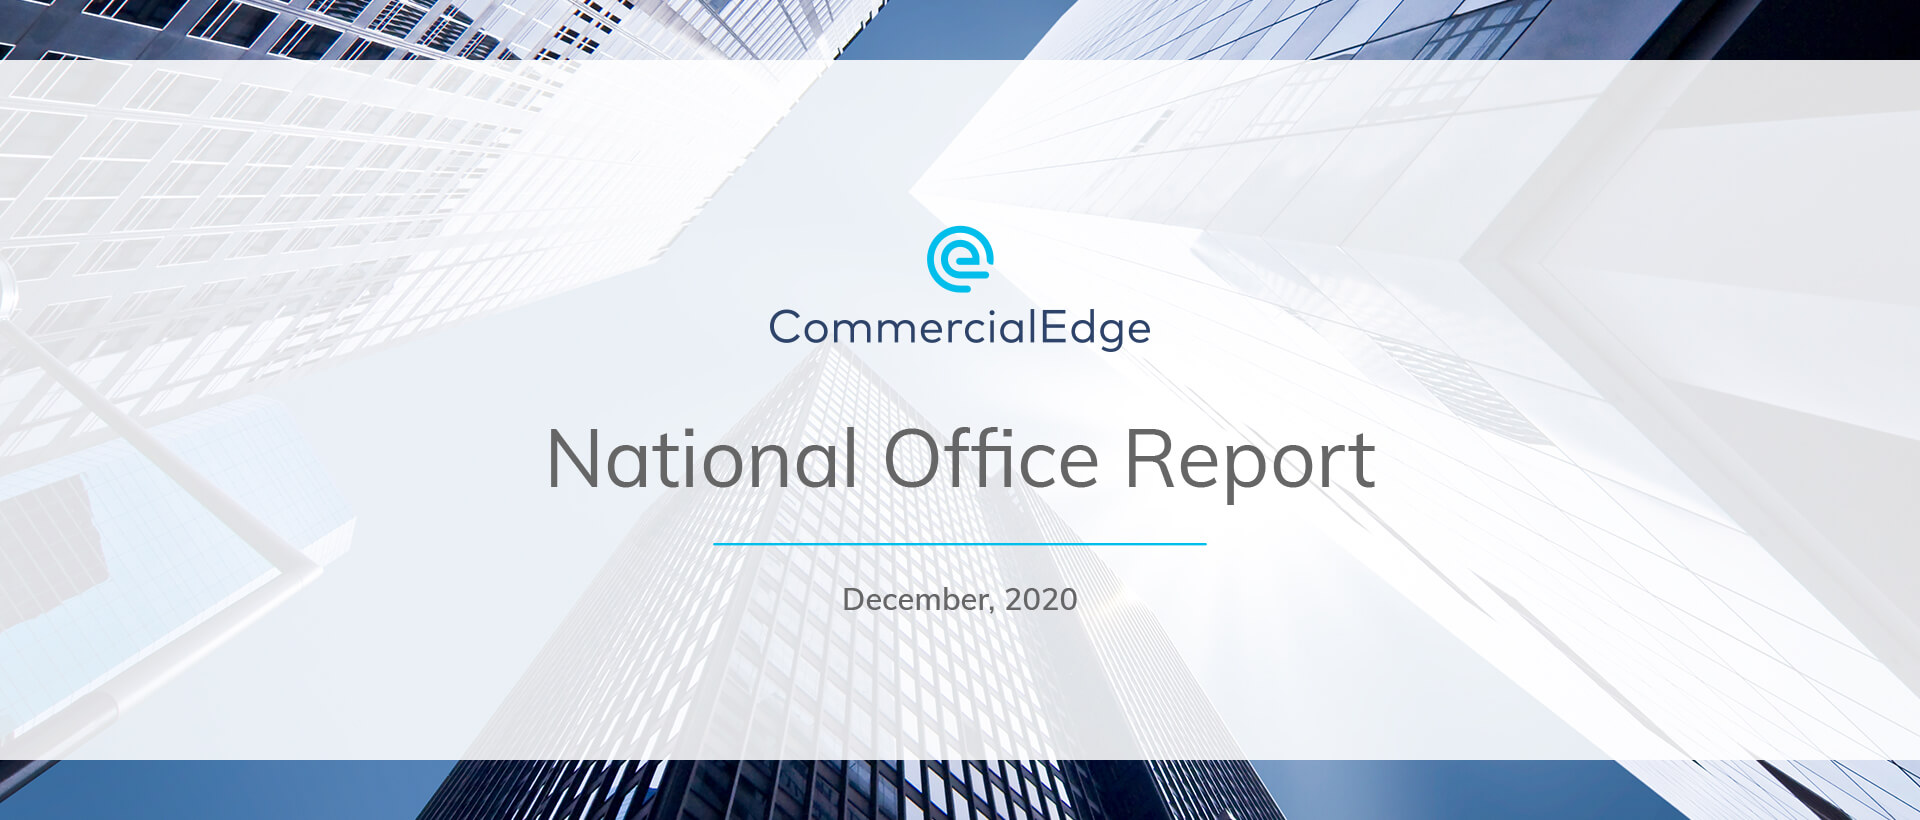 CommercialEdge National Office Report December 2020